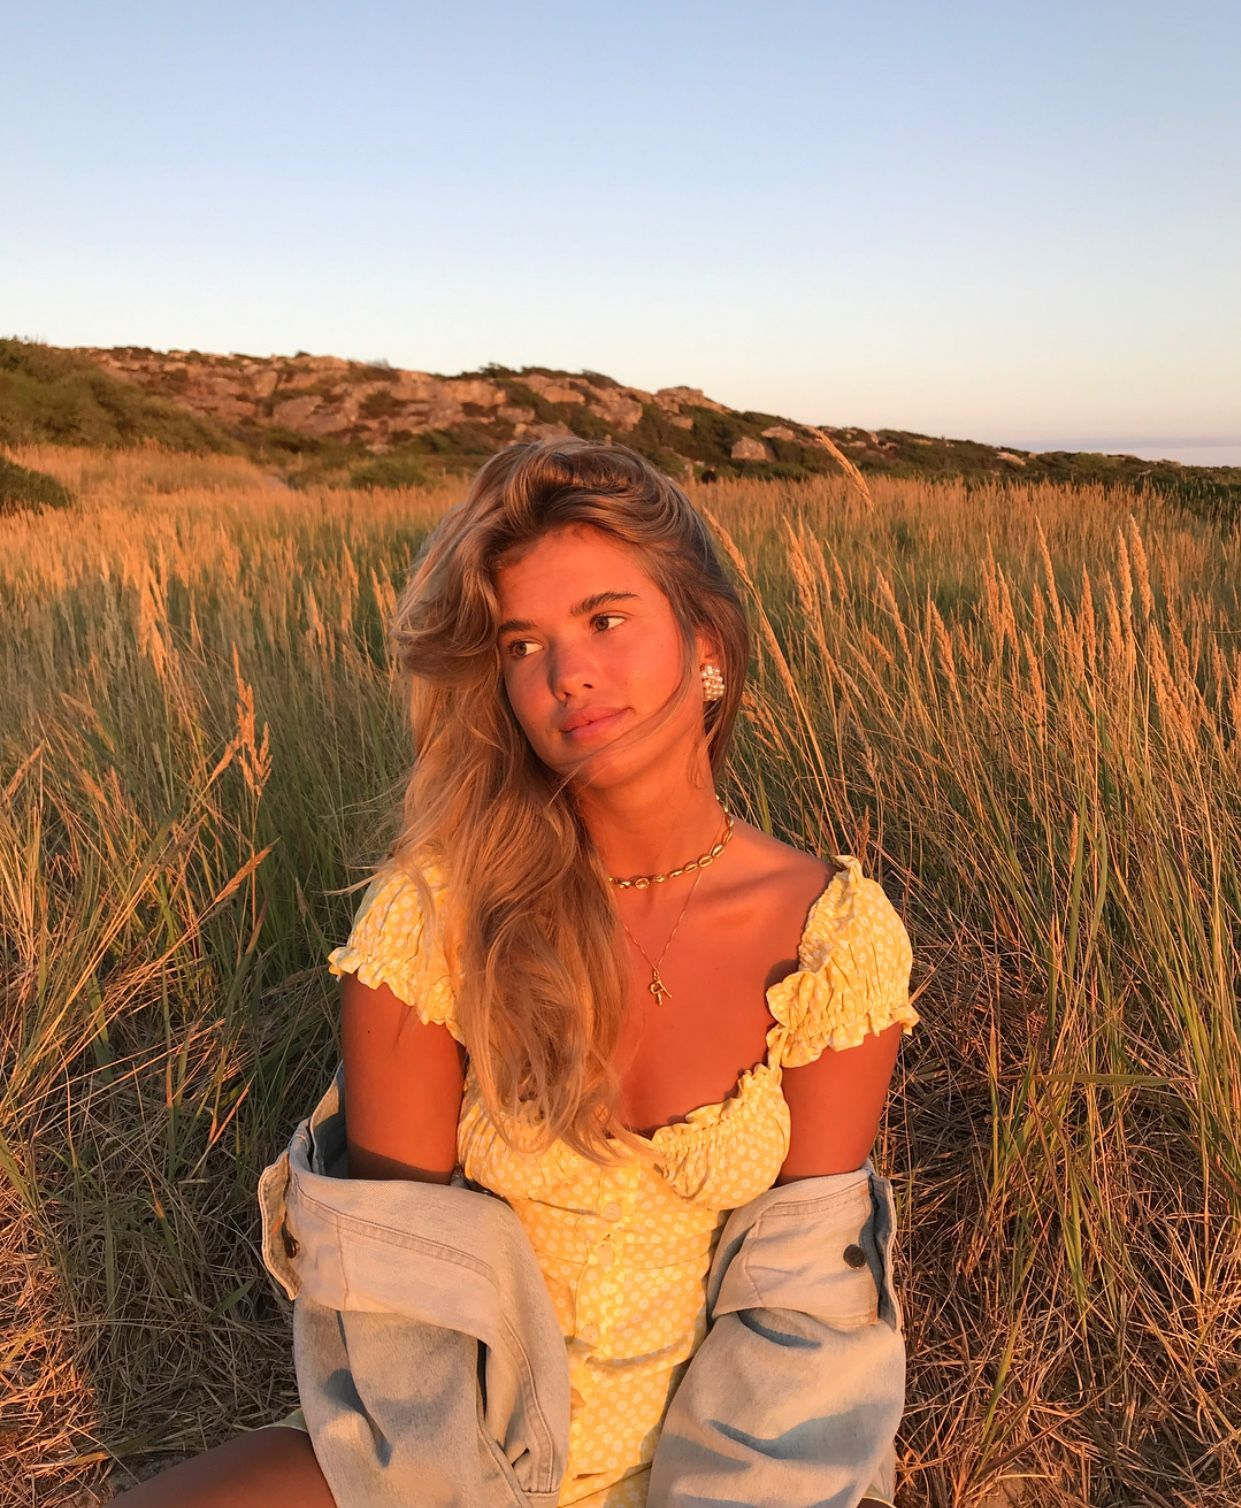 Matilda Djerf   Photoshoot poses, Poses, Cute poses for pictures